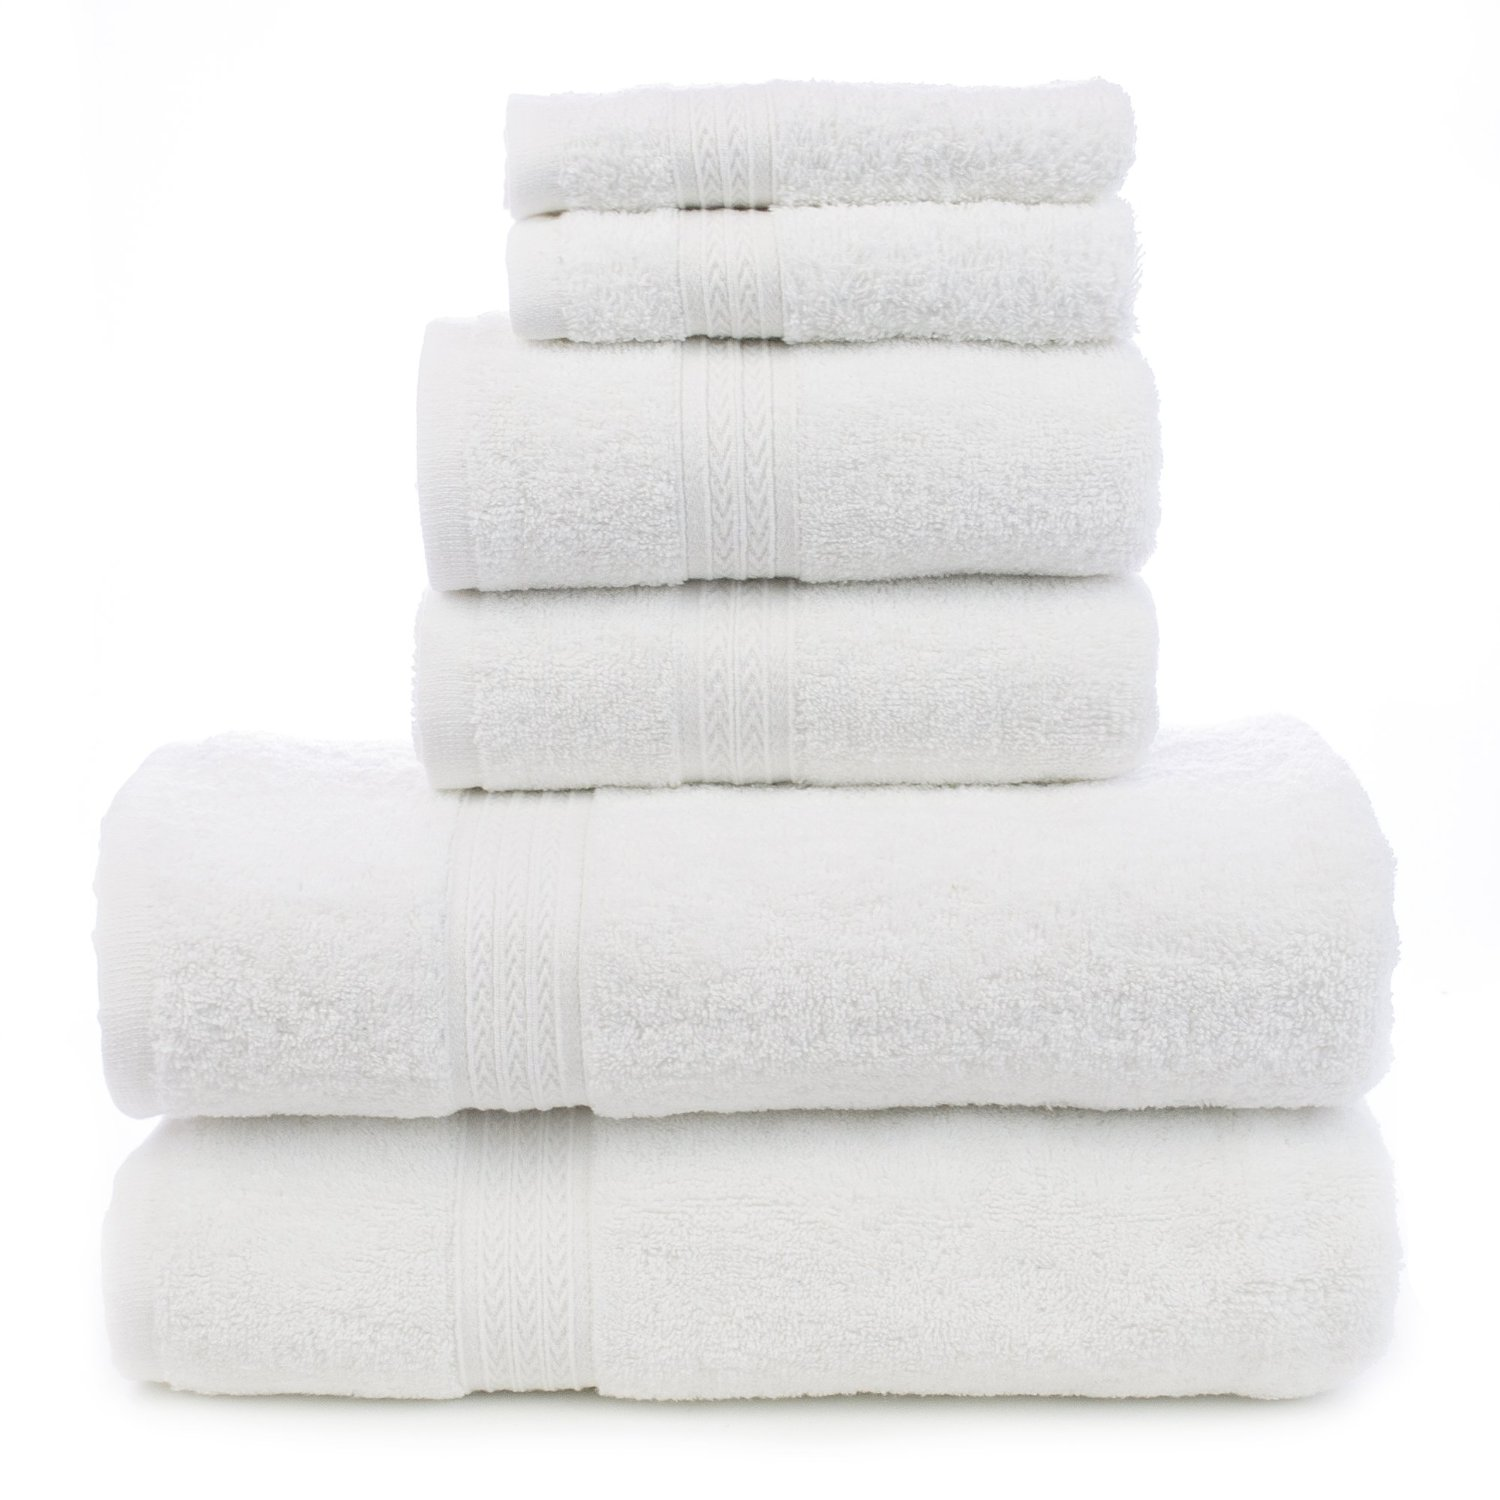 Soft Touch Linen Terry Cloth Towel Set, 2 Bath Towels, 2 Hand Towels, 2 Washcloths, White review